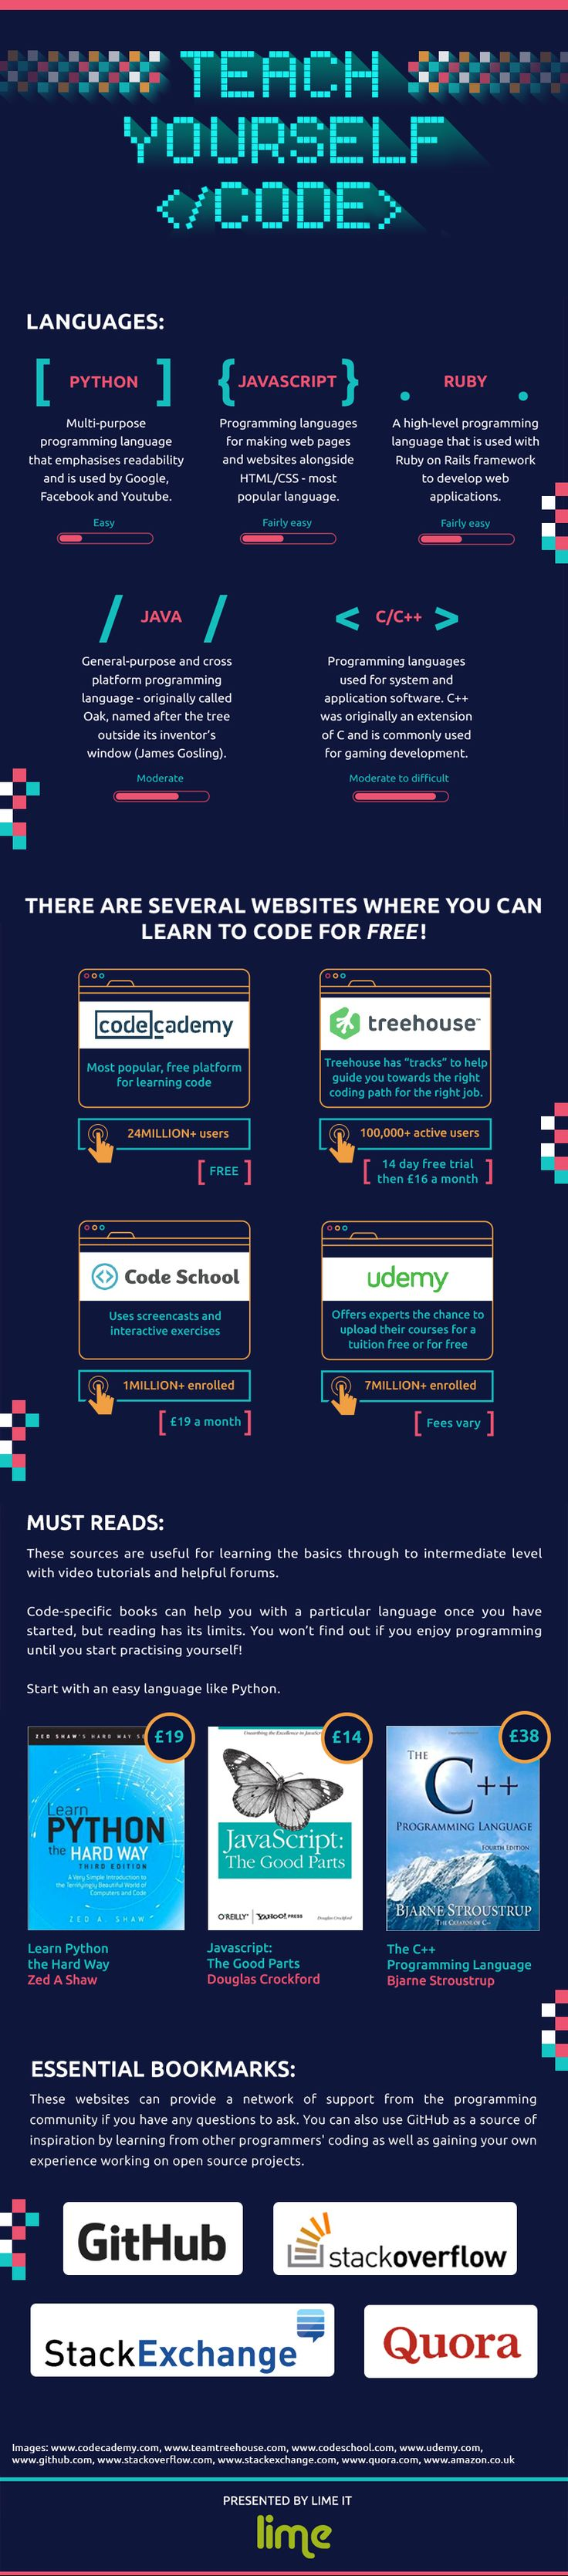 The How to Teach Yourself Code Infographic presents sources to help you decide what programming language is best for you and how you can learn from others.